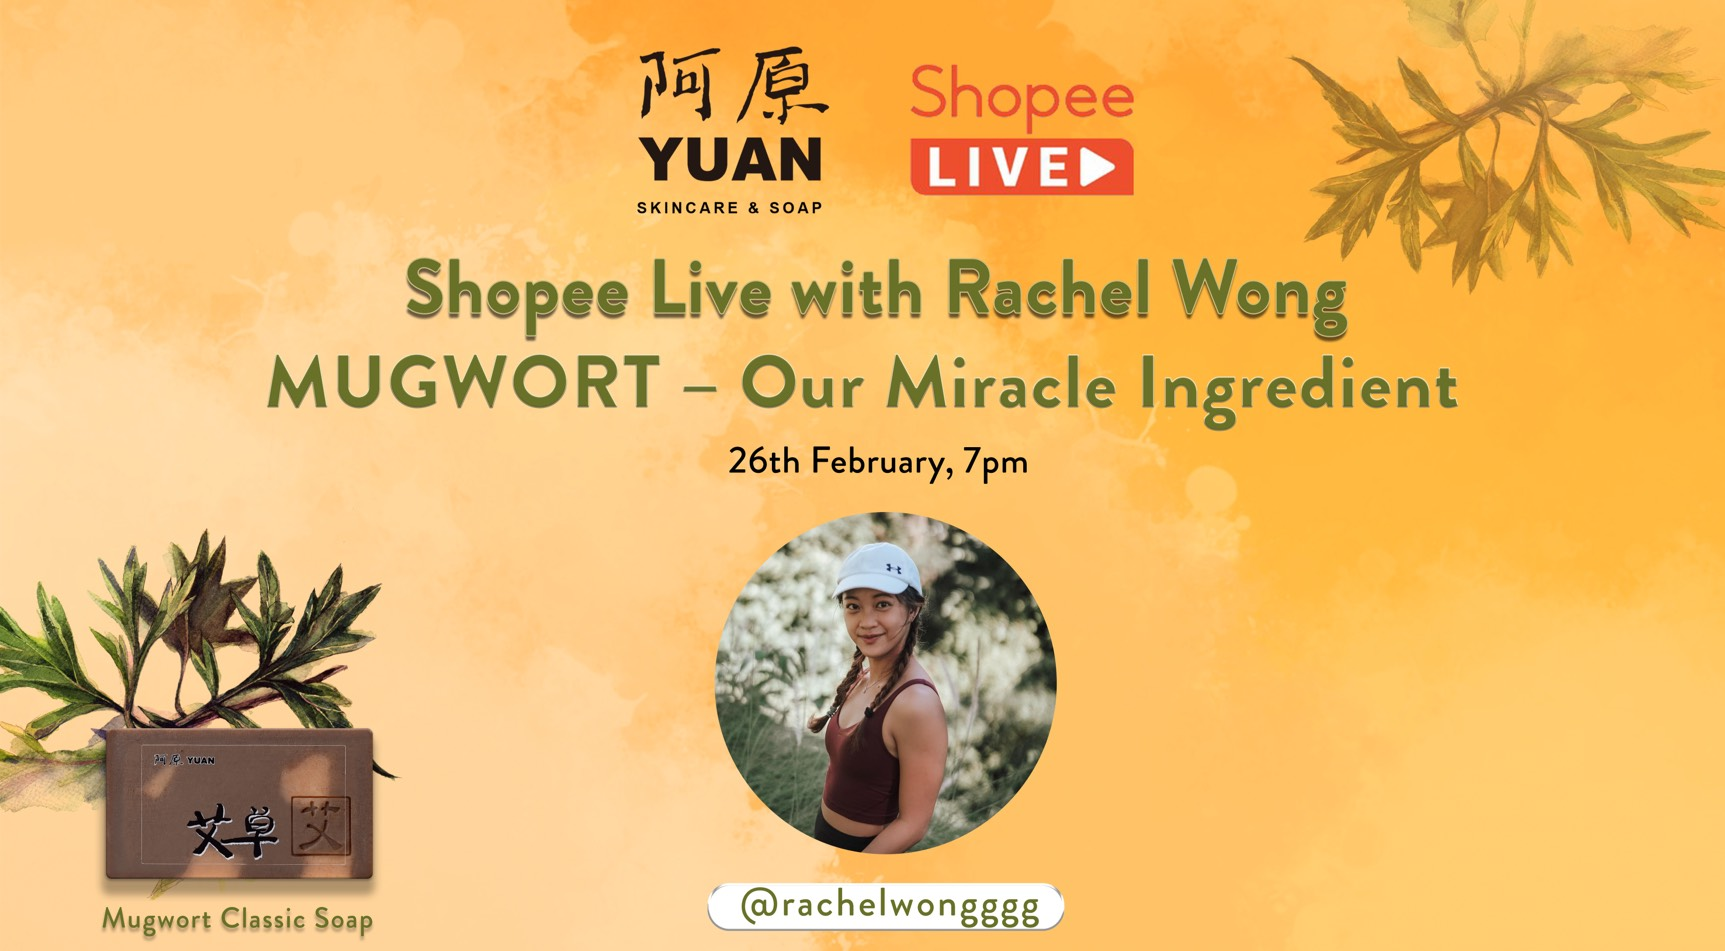 Join Rachel Wong on Shopee Live to Discover the Yuan Mugwort (艾草) Classic Collection